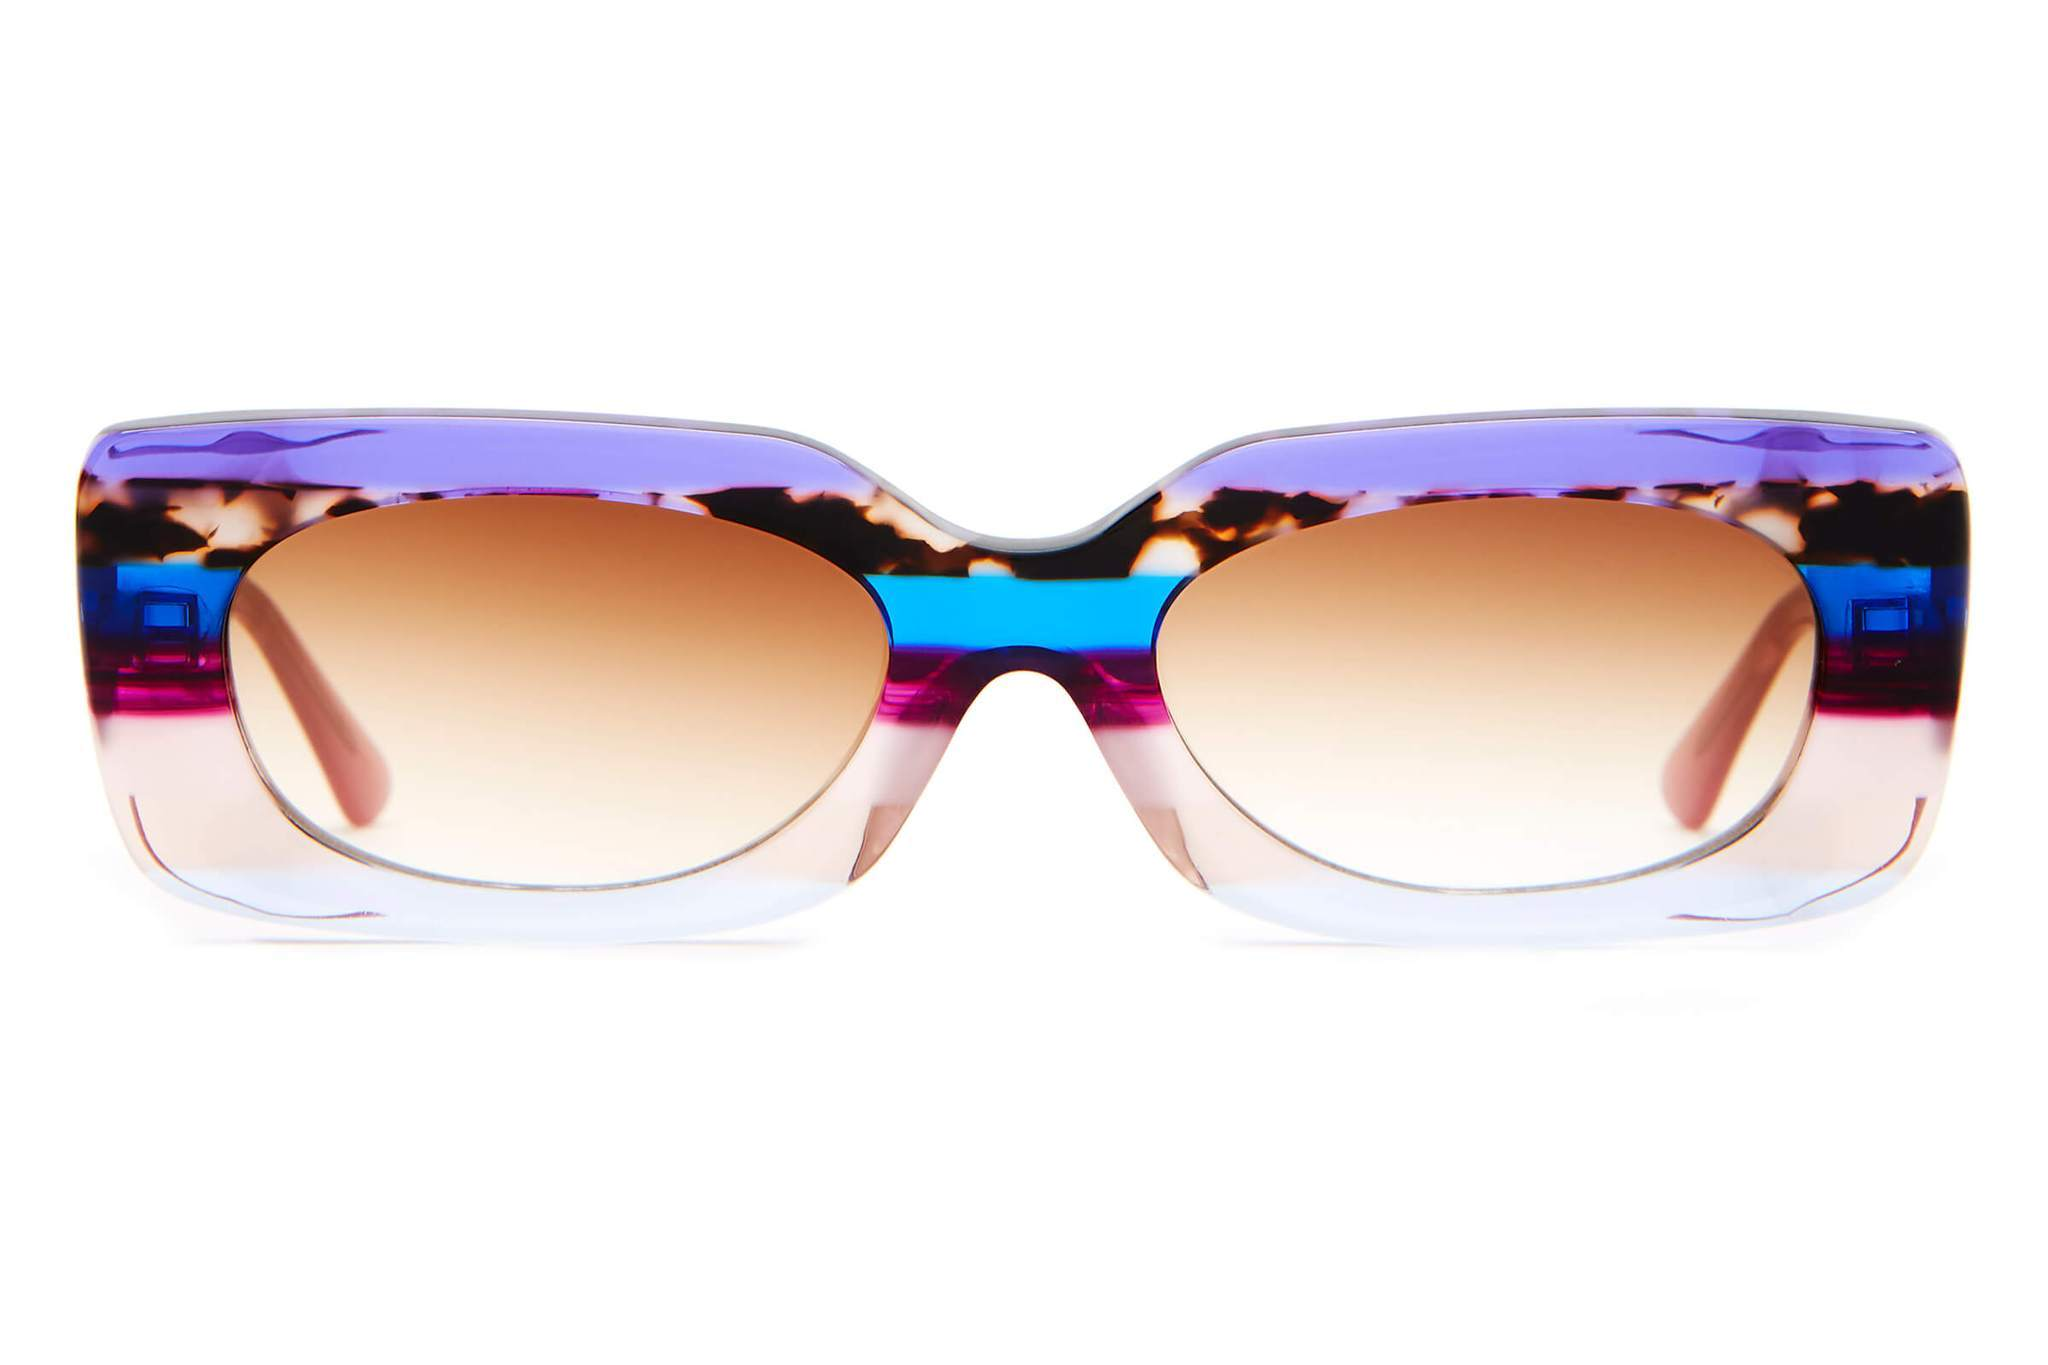 CRAP EYEWEAR Supa Phreek / Lilac Stripes